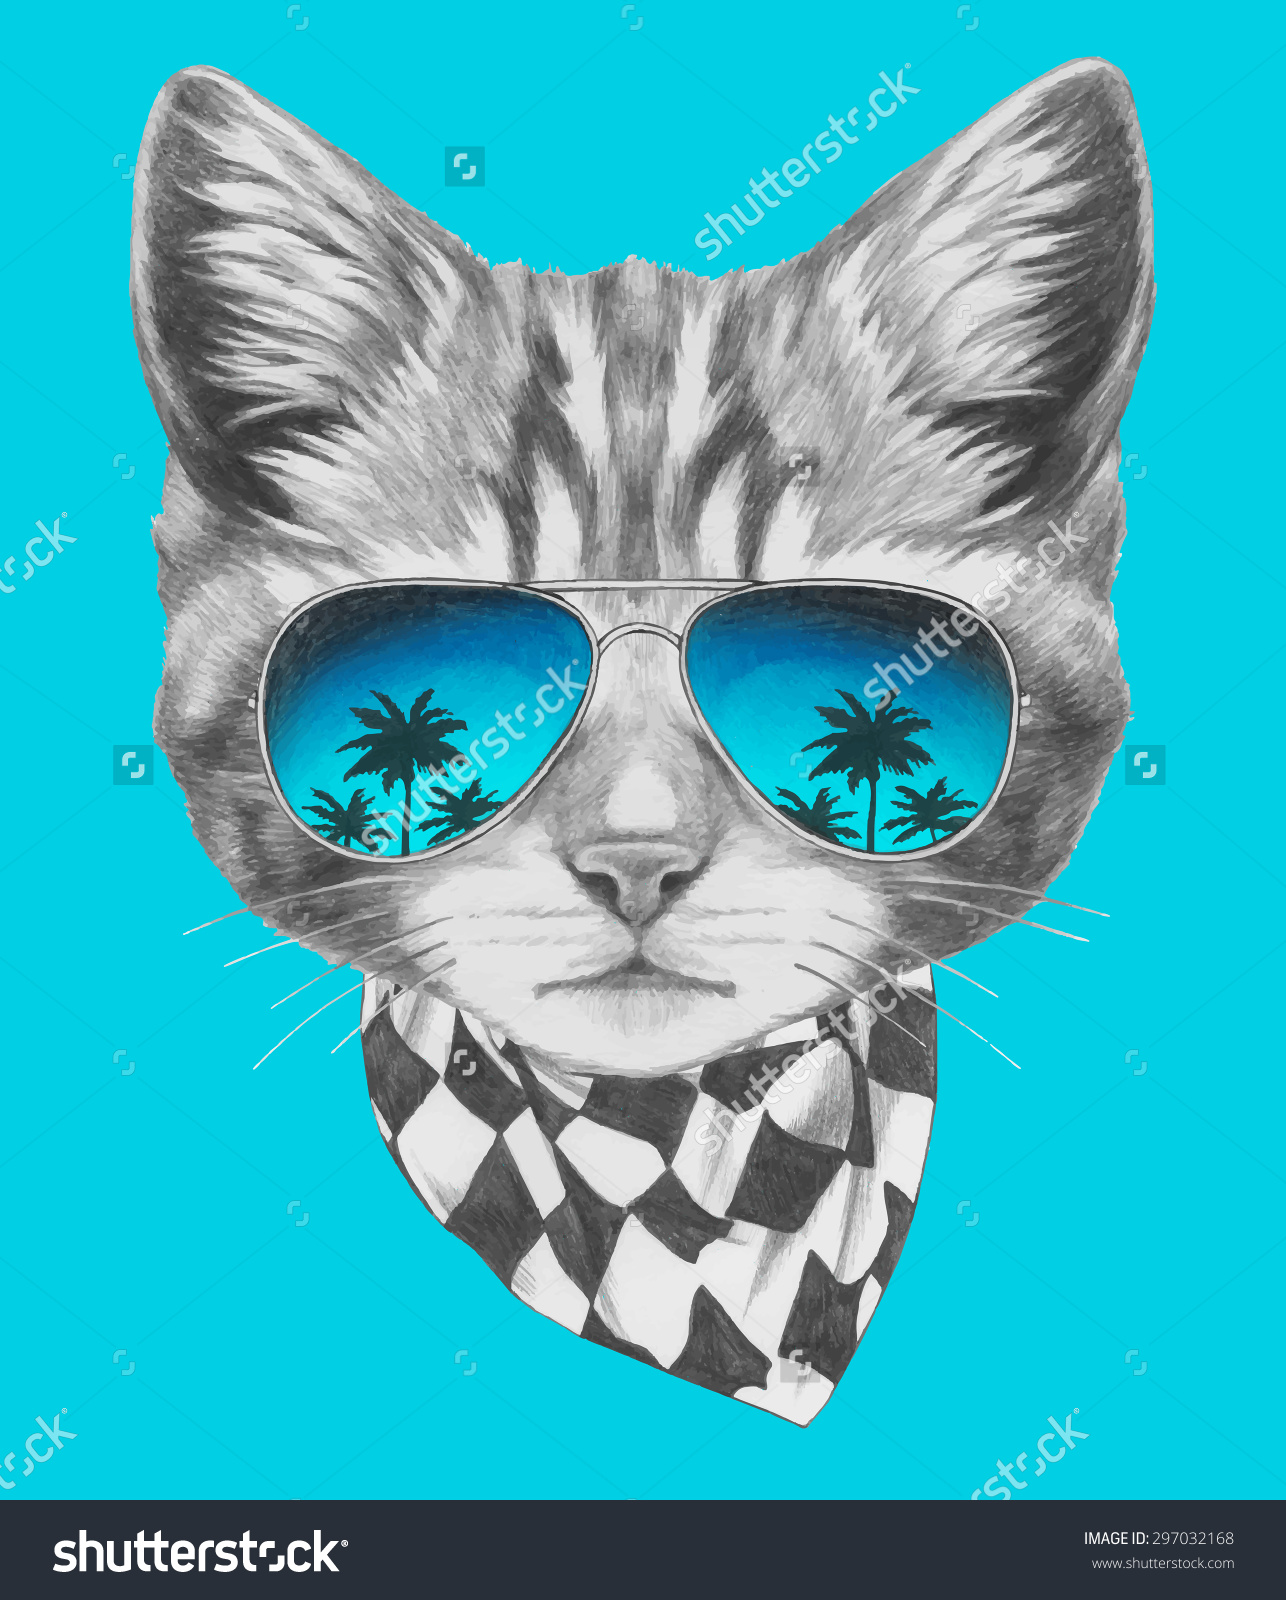 Hand Drawn Portrait Cat Mirror Sunglasses Stock Vector 297032168.